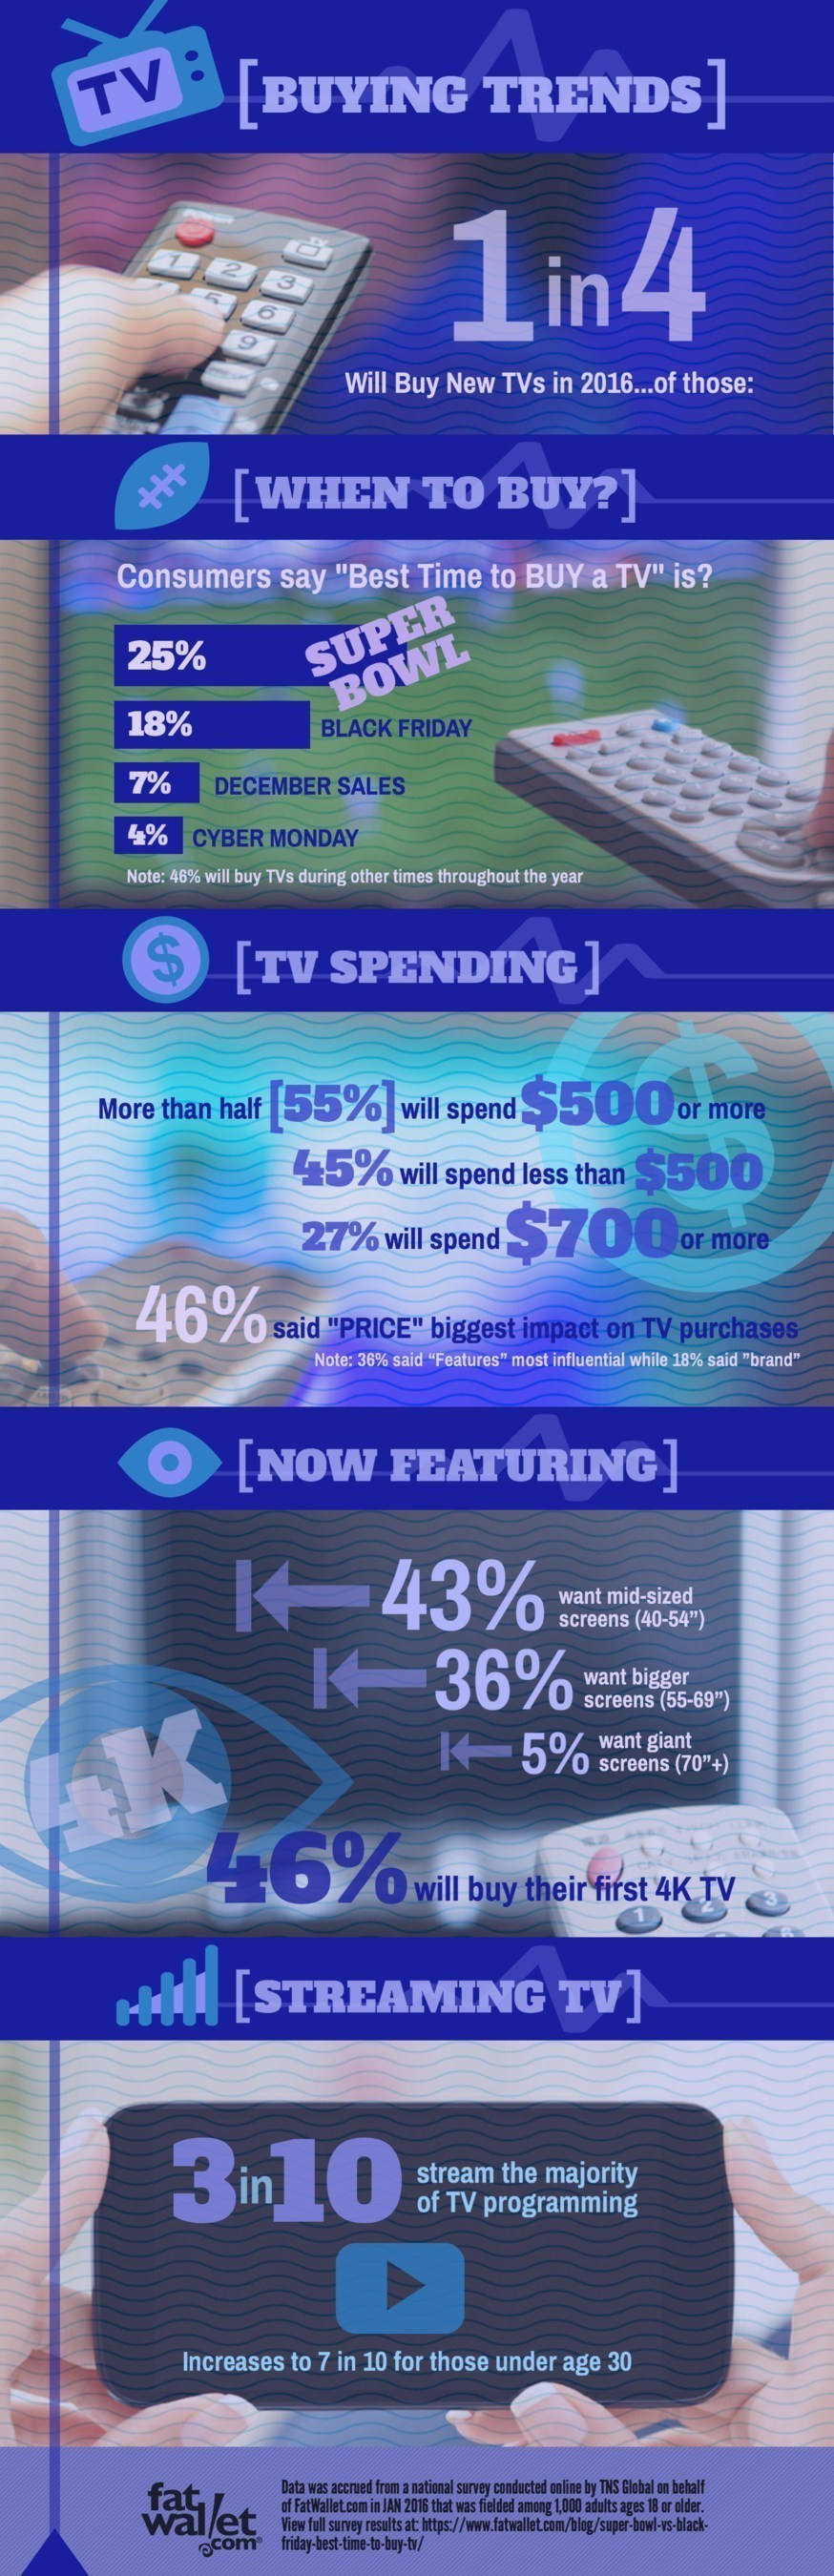 Super Bowl Sales Are Best Time to Buy New TVs in 2016